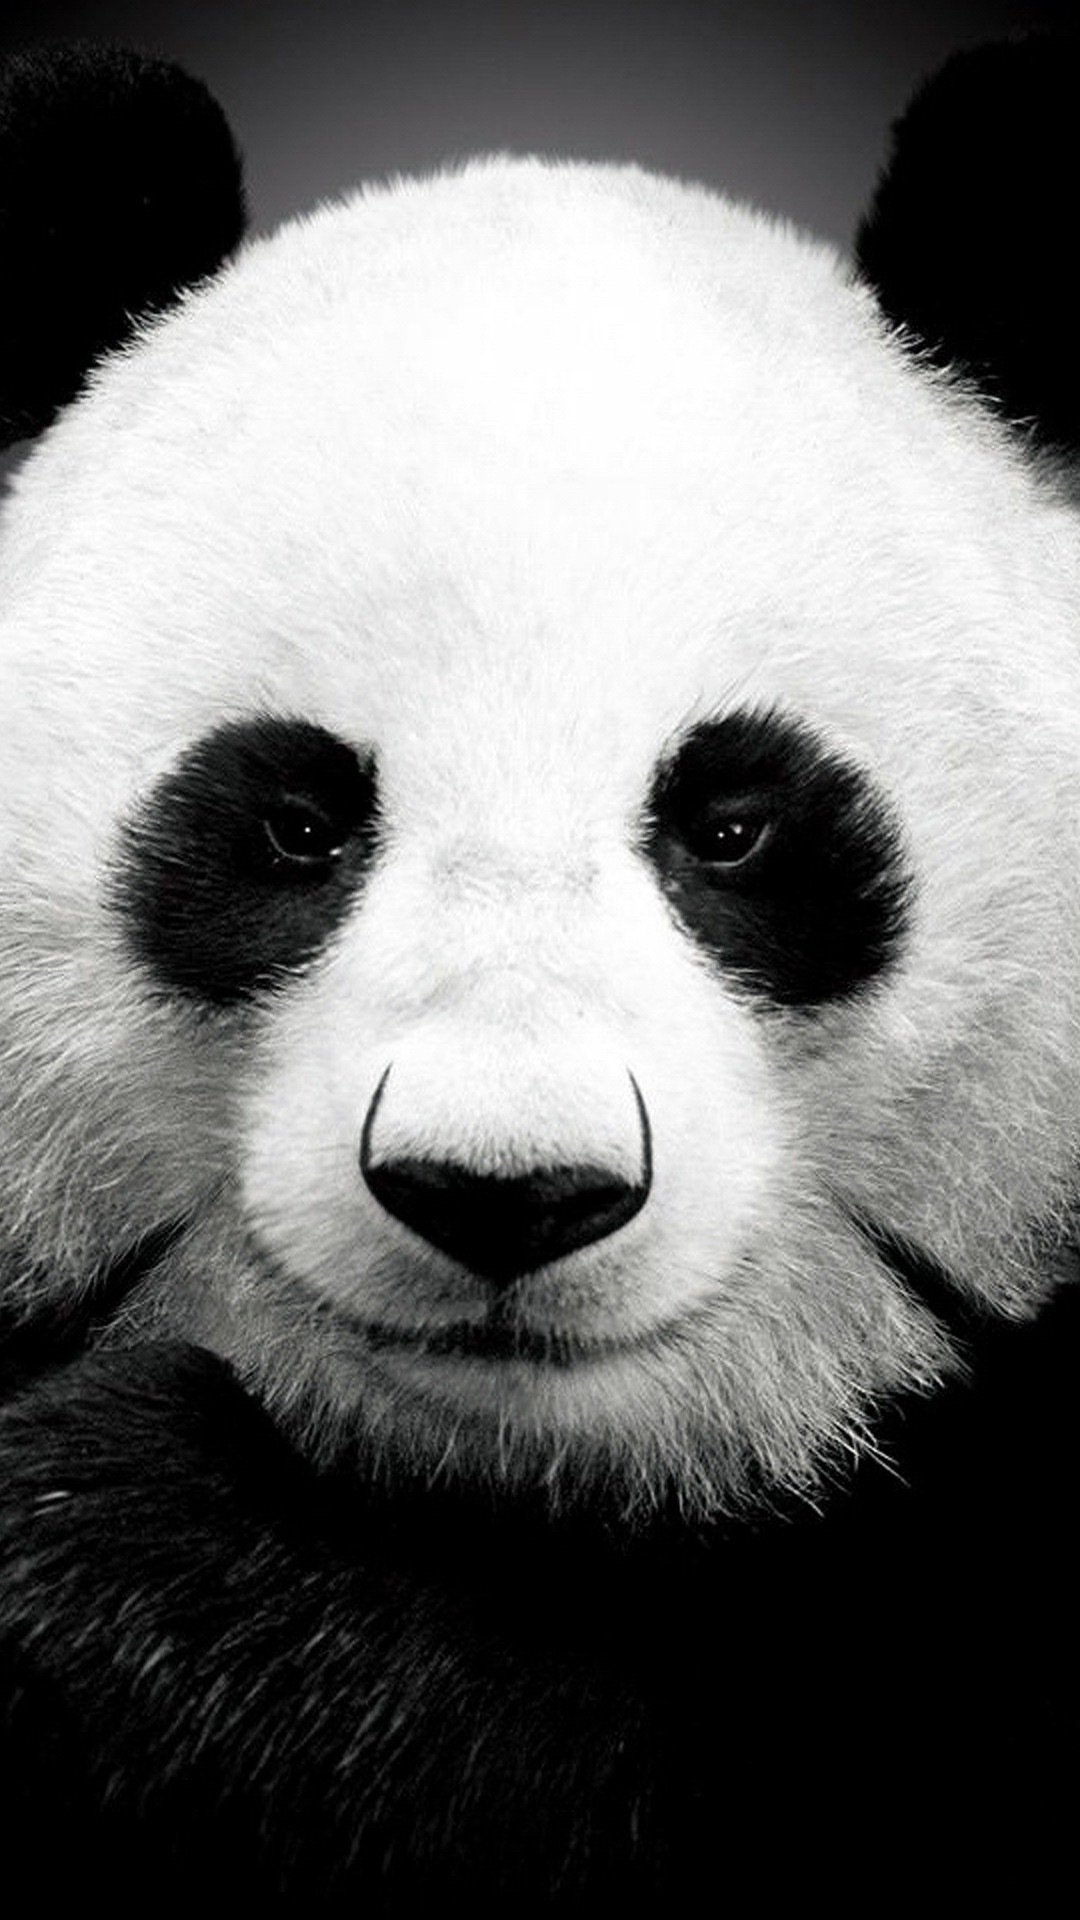 1080x1920 iPhone 6 plus Panda HD Wallpaper